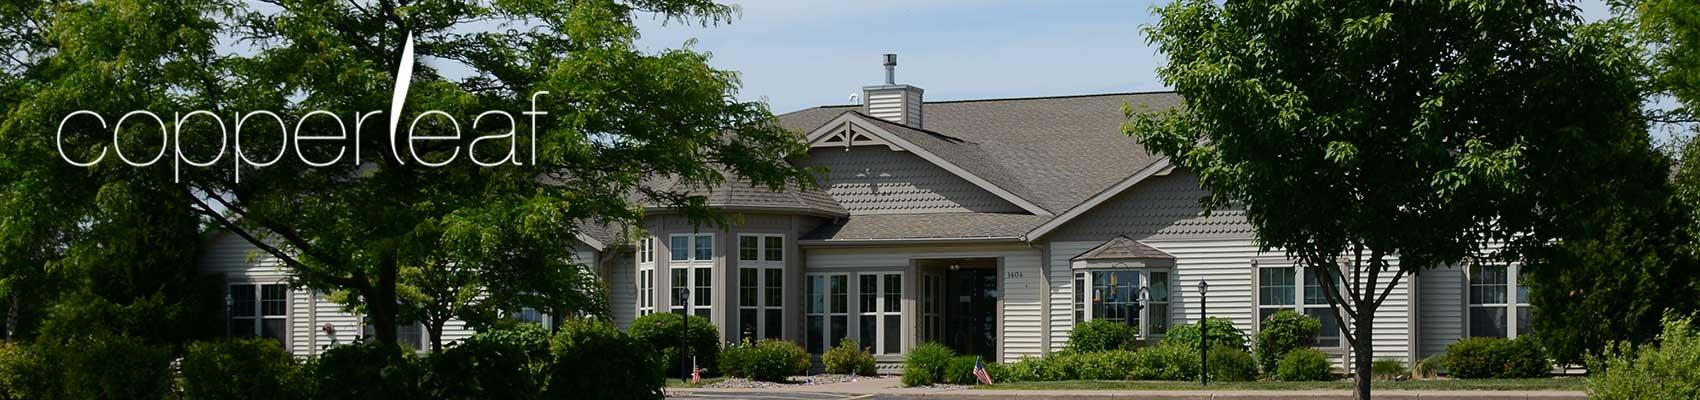 Assisted Living assisted living facilities Mosinee Wisconsin Marathon County